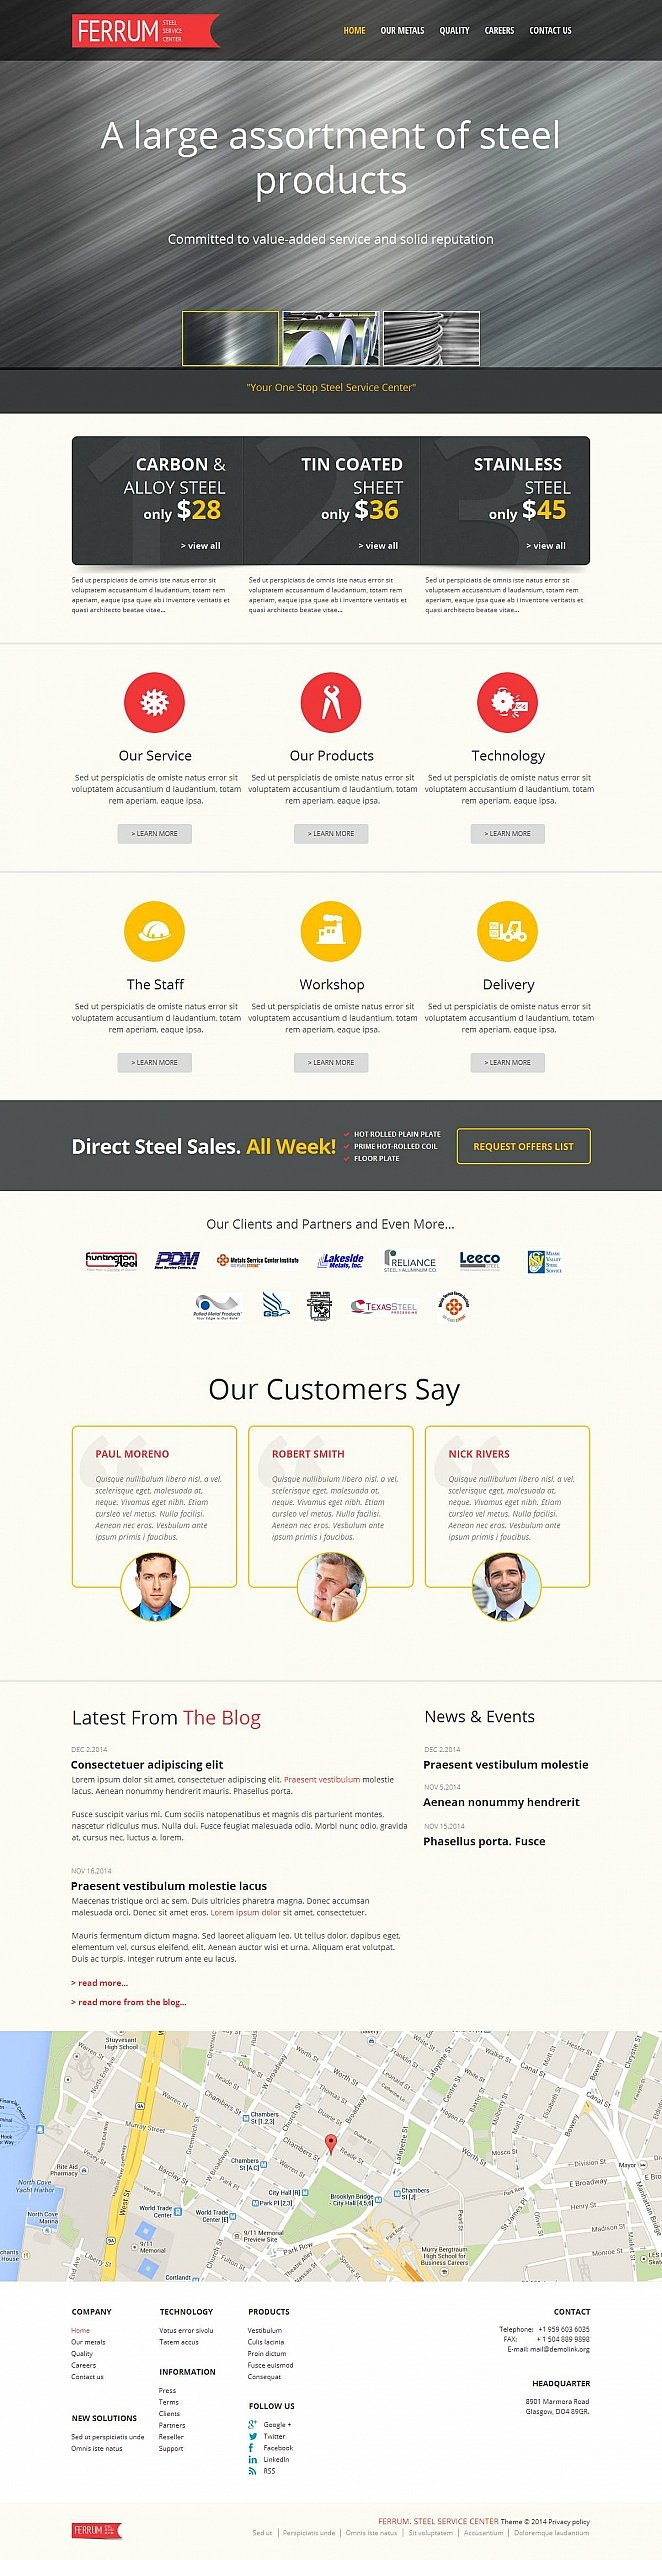 Steel Service Center Website Template with Creative Homepage Design - image